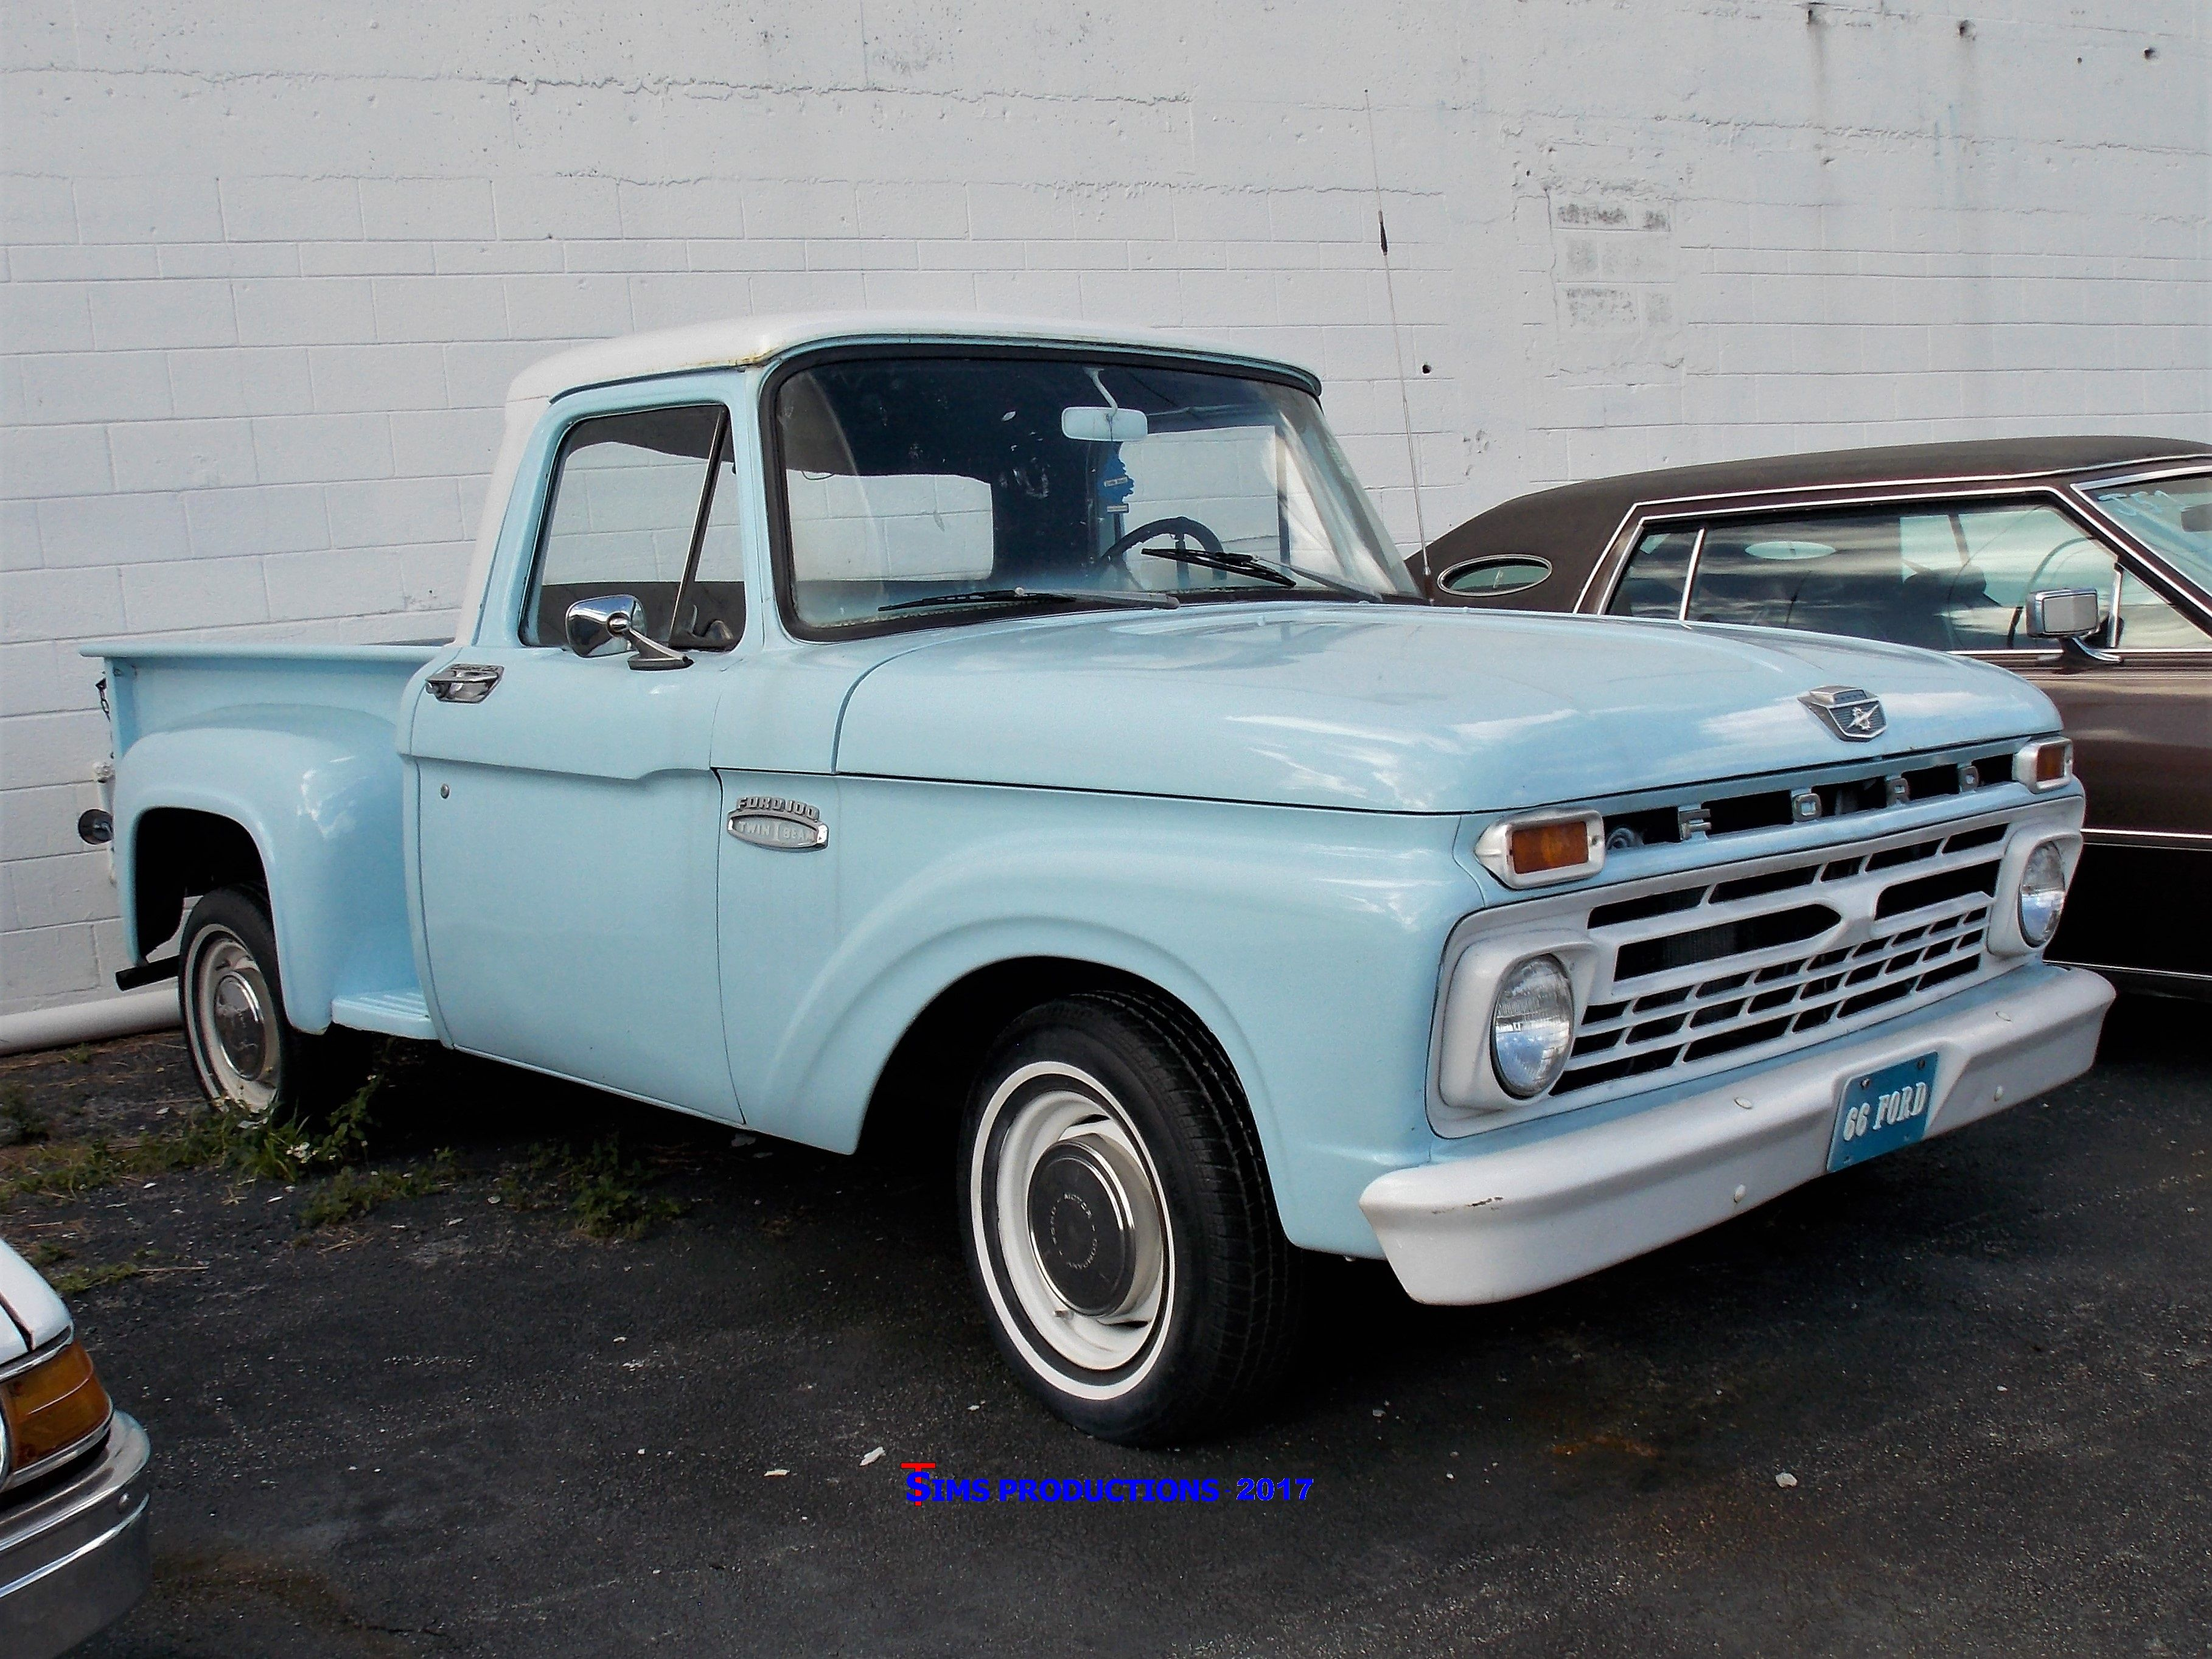 small resolution of 1966 ford f100 stepside pickup truck vintageauto antiqueauto